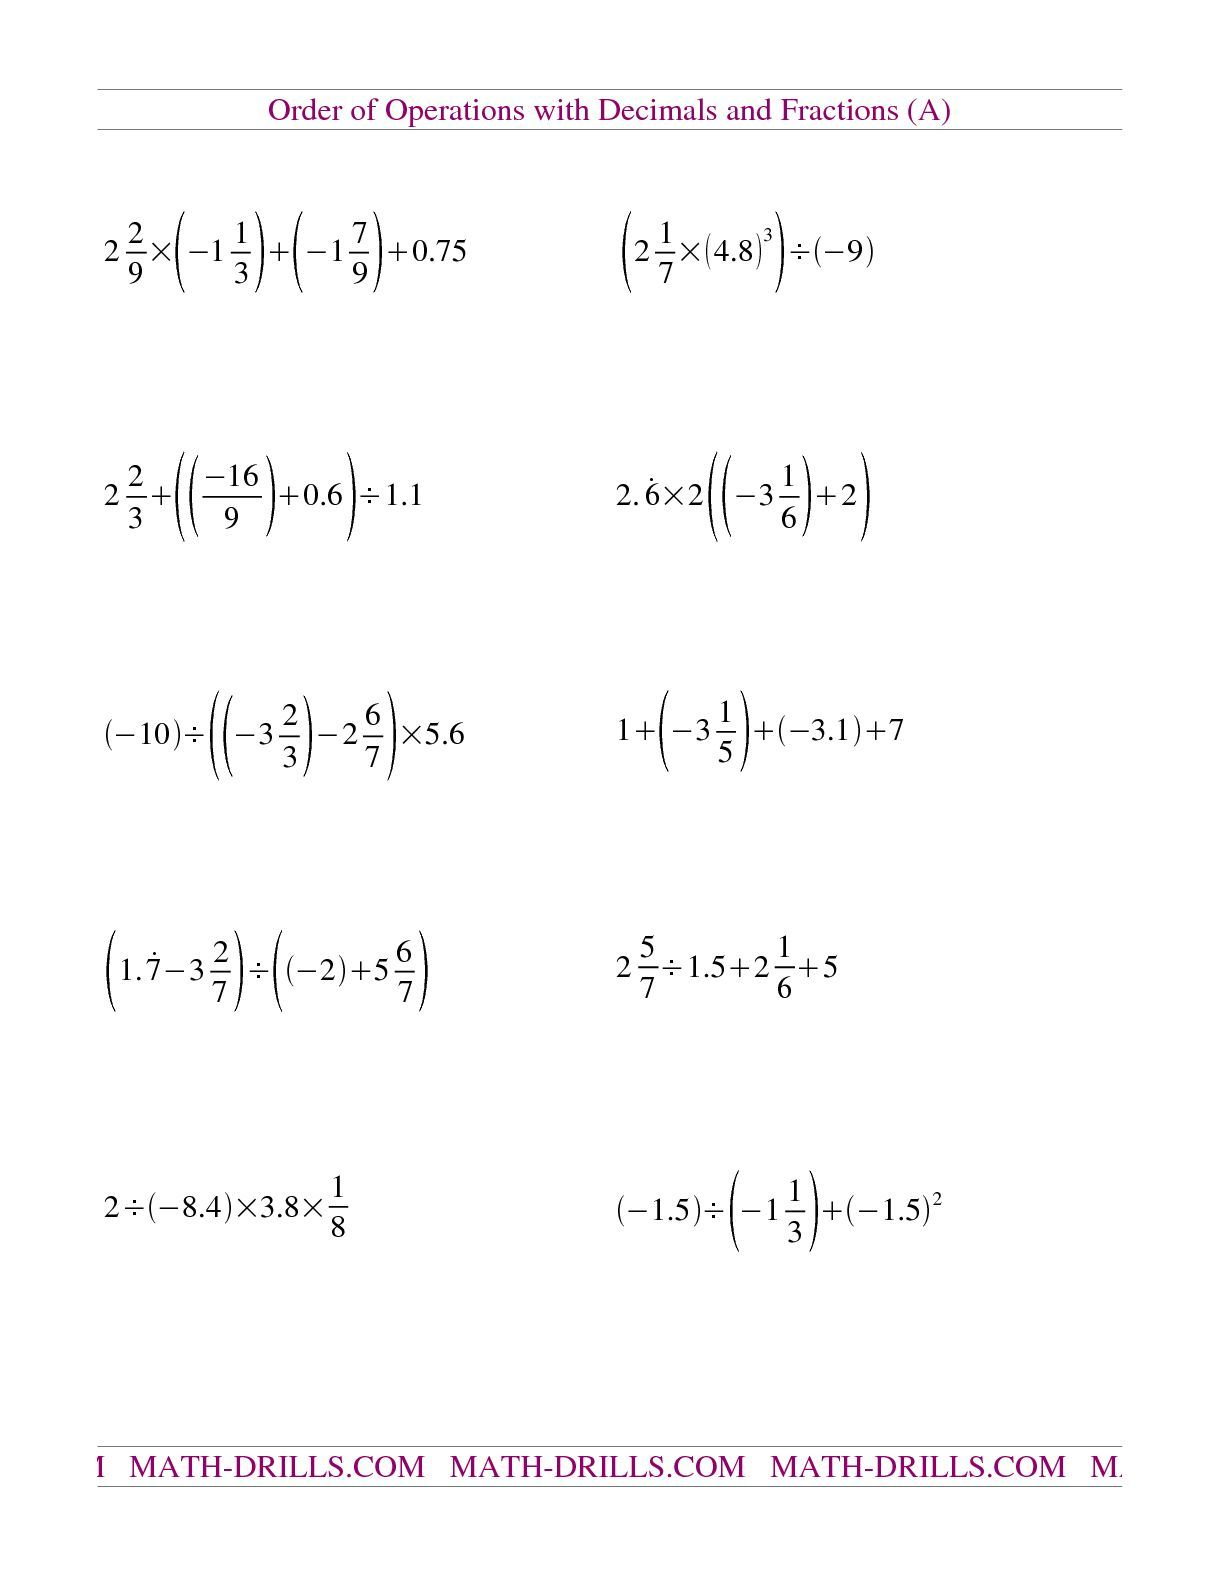 medium resolution of The Decimals and Fractions Mixed with Negatives (A) math worksheet from the  Order of Operations Workshe…   Order of operations